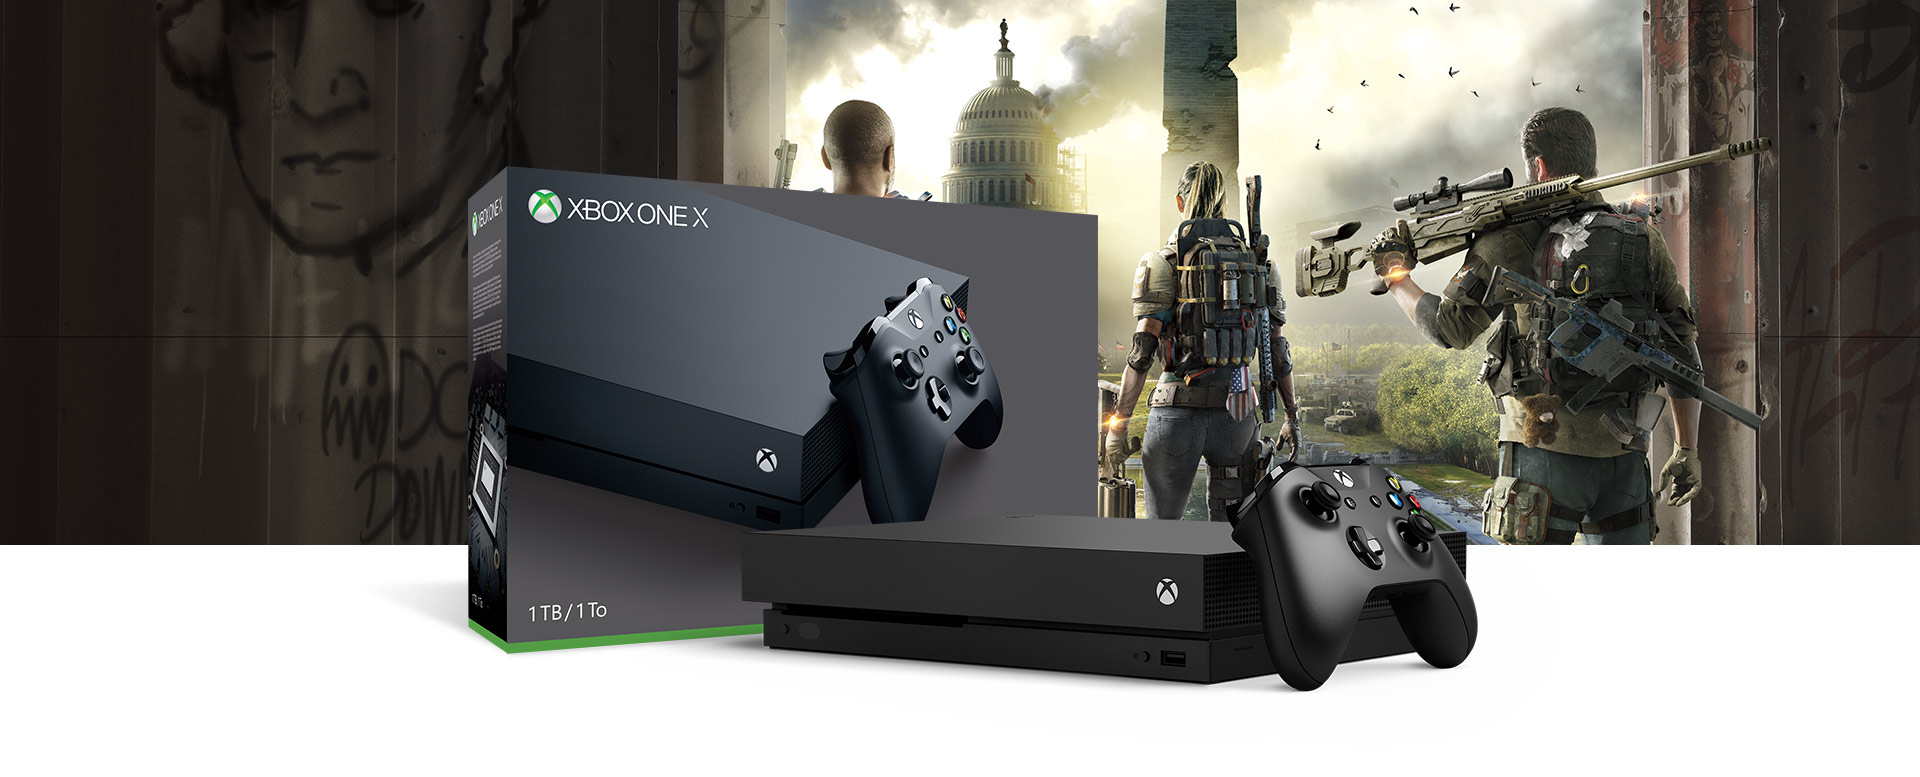 Xbox One X console in front of a hardware bundle box featuring Tom Clancy's The Division 2 art